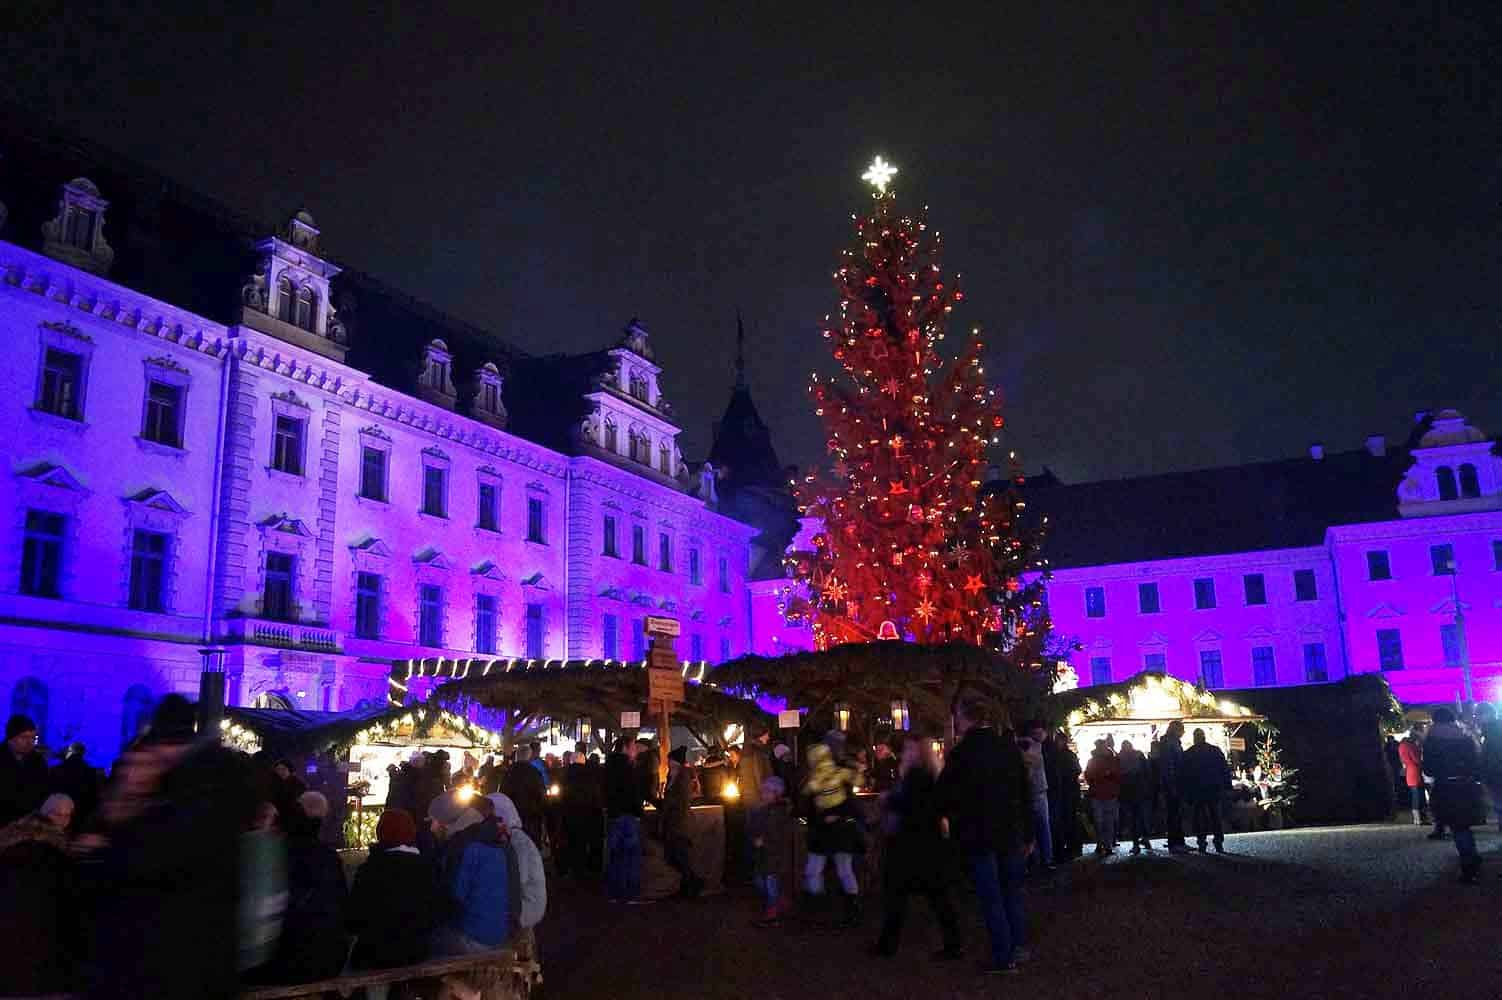 der sch nste weihnachtsmarkt in regensburg reiseblog. Black Bedroom Furniture Sets. Home Design Ideas